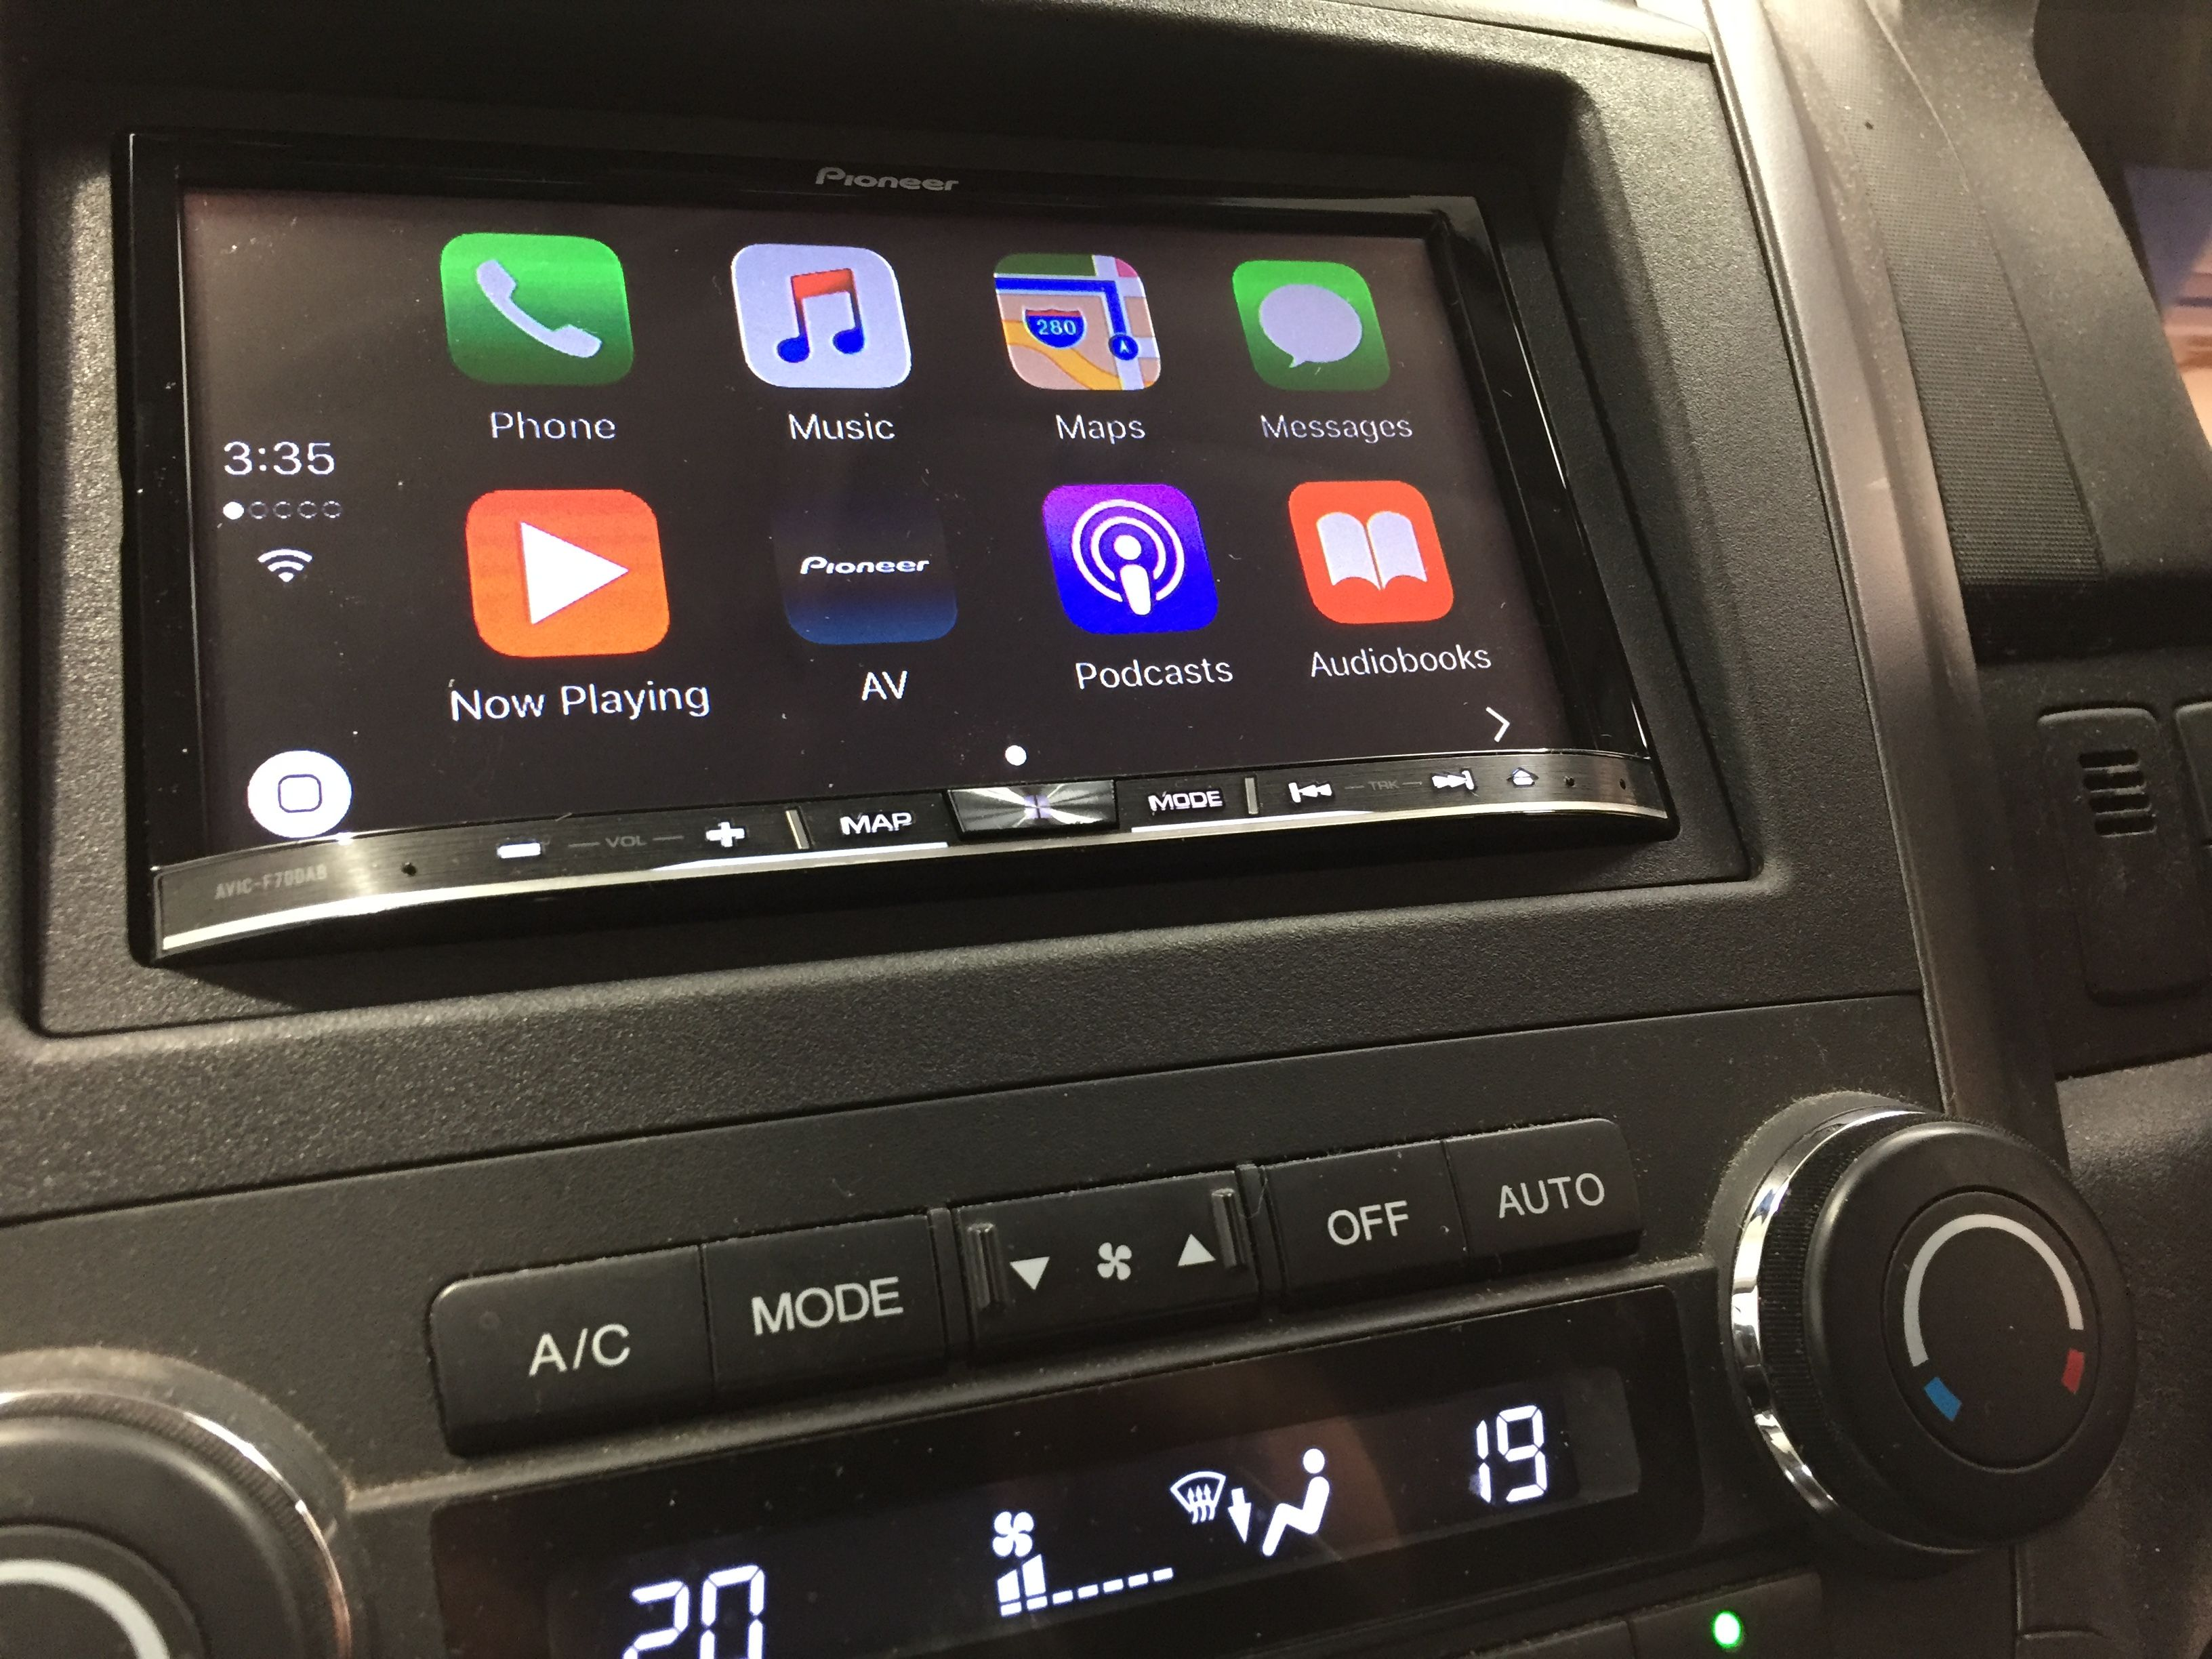 Honda crv gets the pioneer car treatment with a brand new digital radio touchsceen dvd player complete with apple car play android auto support